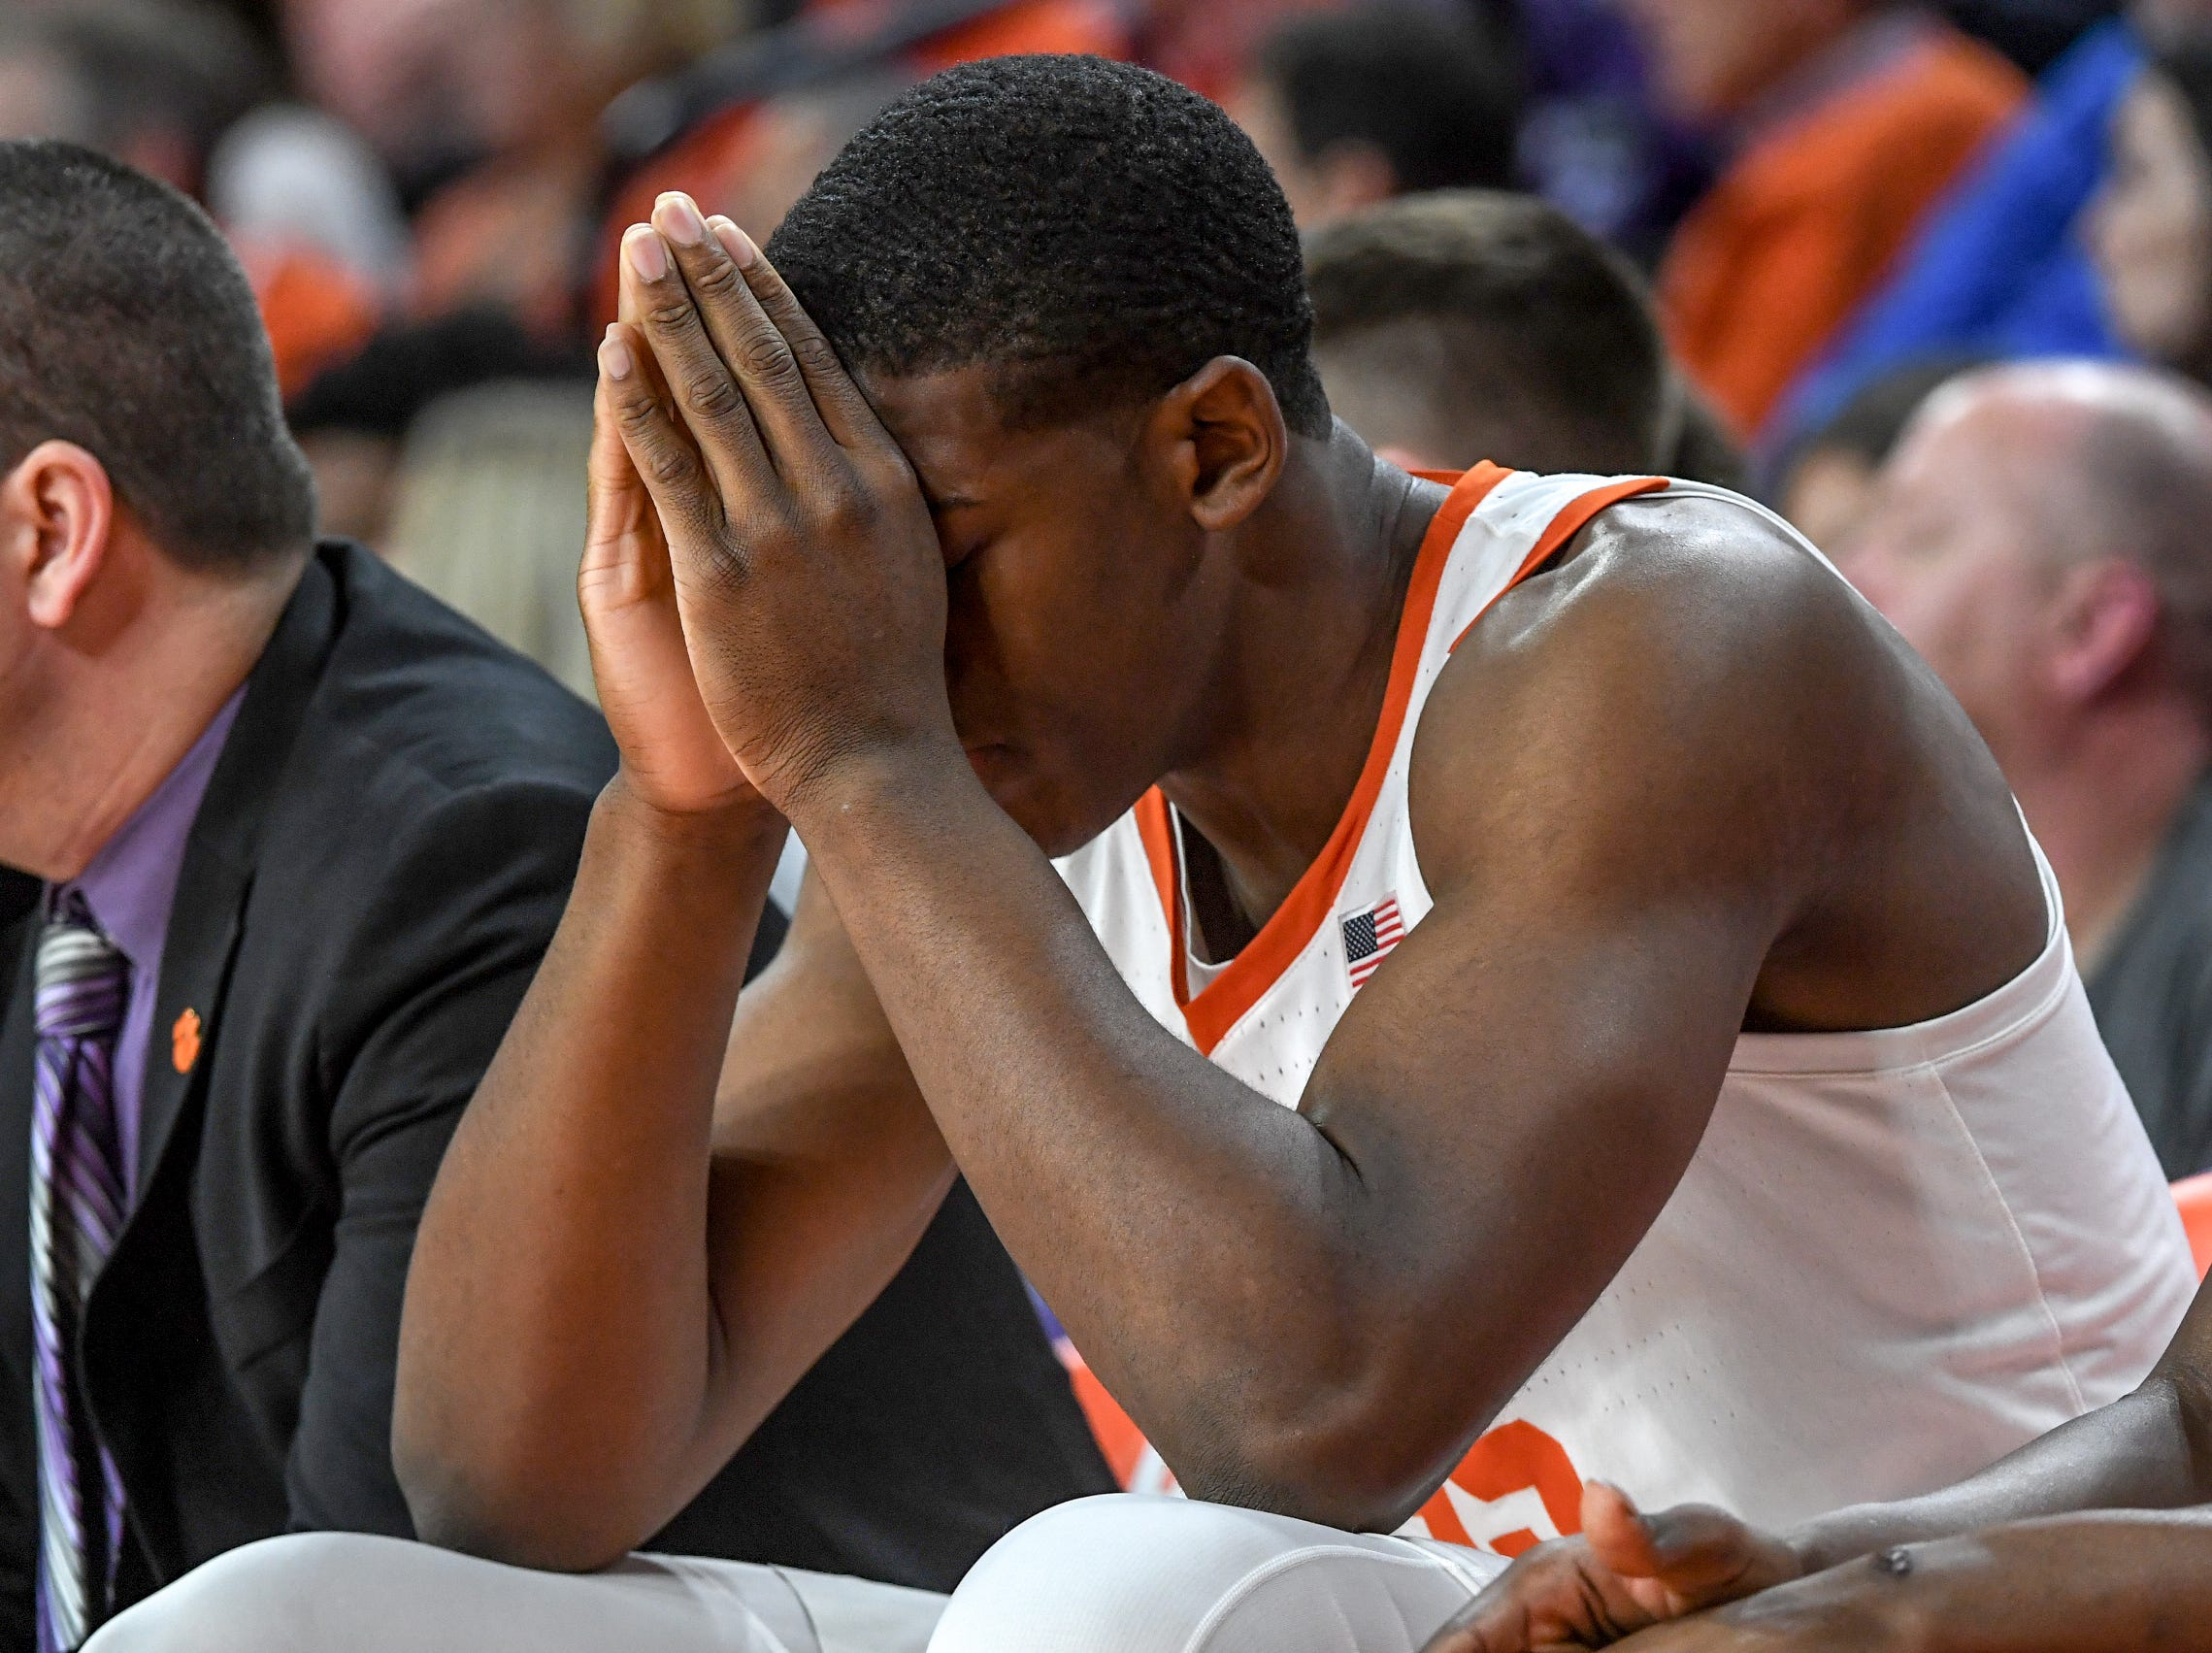 Clemson center Trey Jemison (55) holds his hands to his face in the closing minutes of the game with Florida State during the second half at Littlejohn Coliseum in Clemson Tuesday, February 19, 2019.